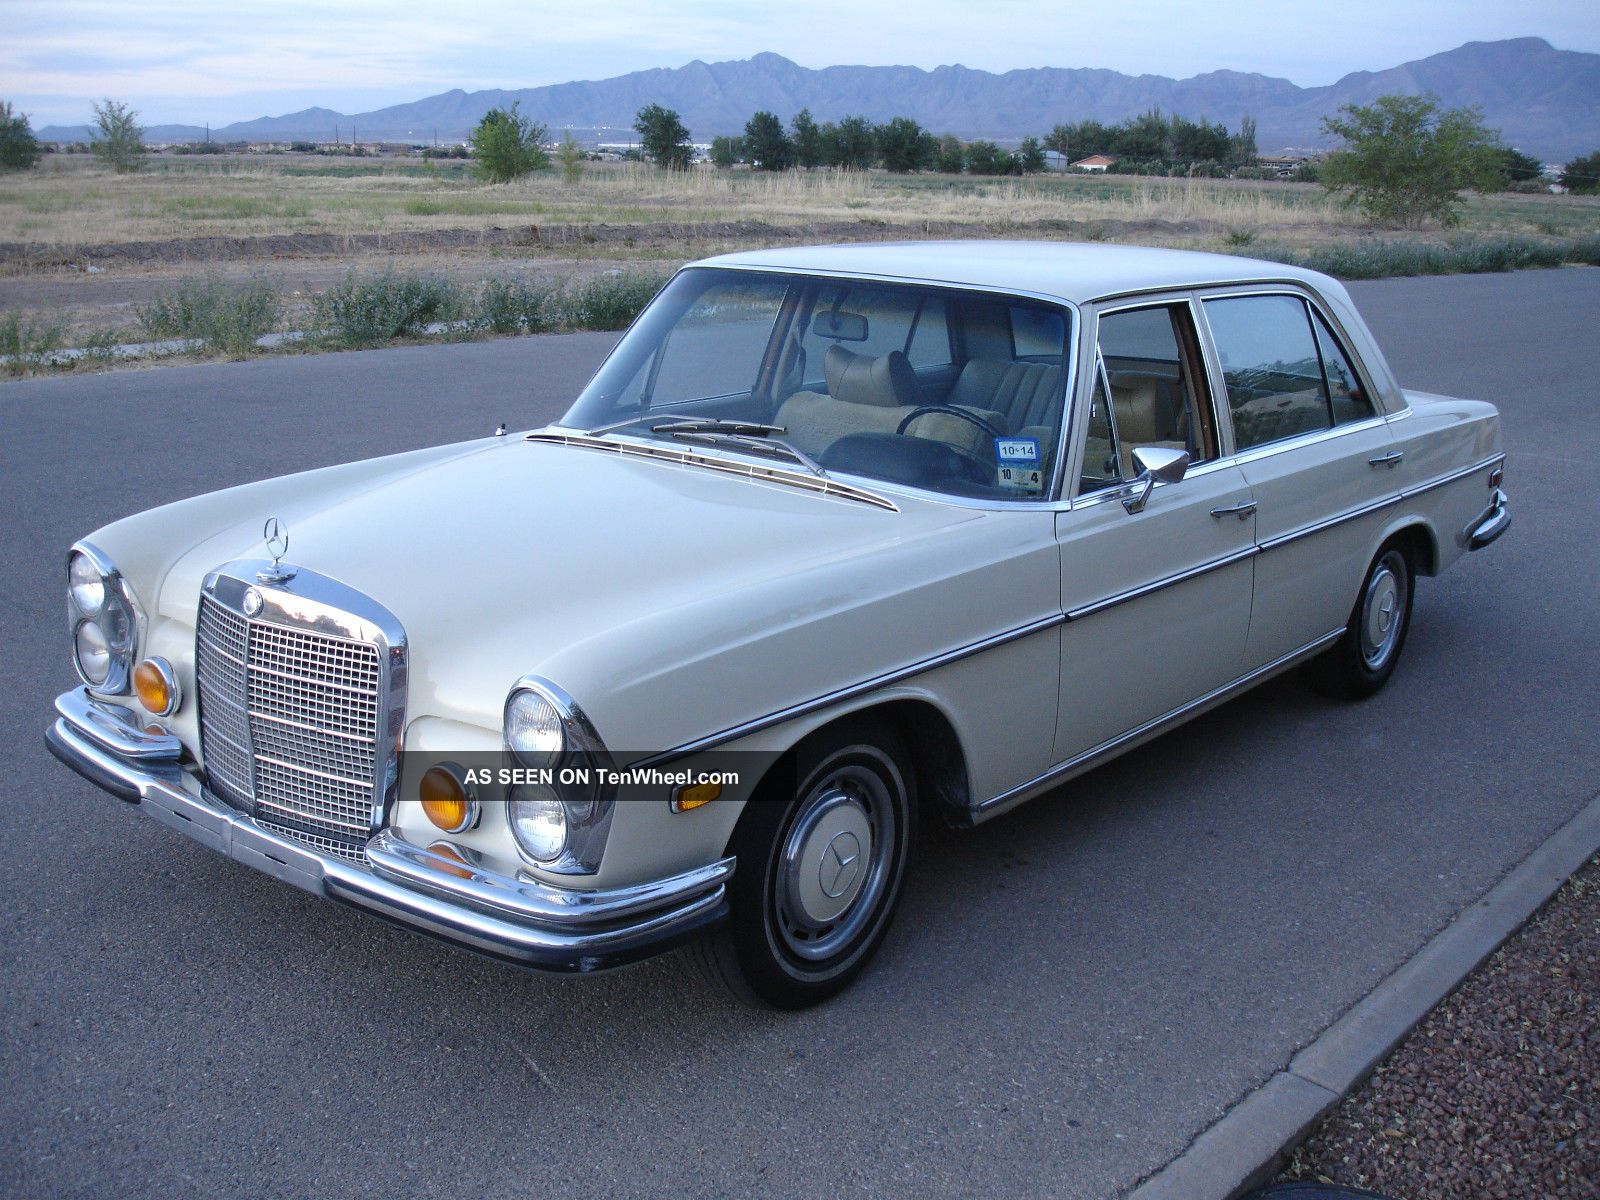 1970 mercedes 280 se 8 model w108. Black Bedroom Furniture Sets. Home Design Ideas